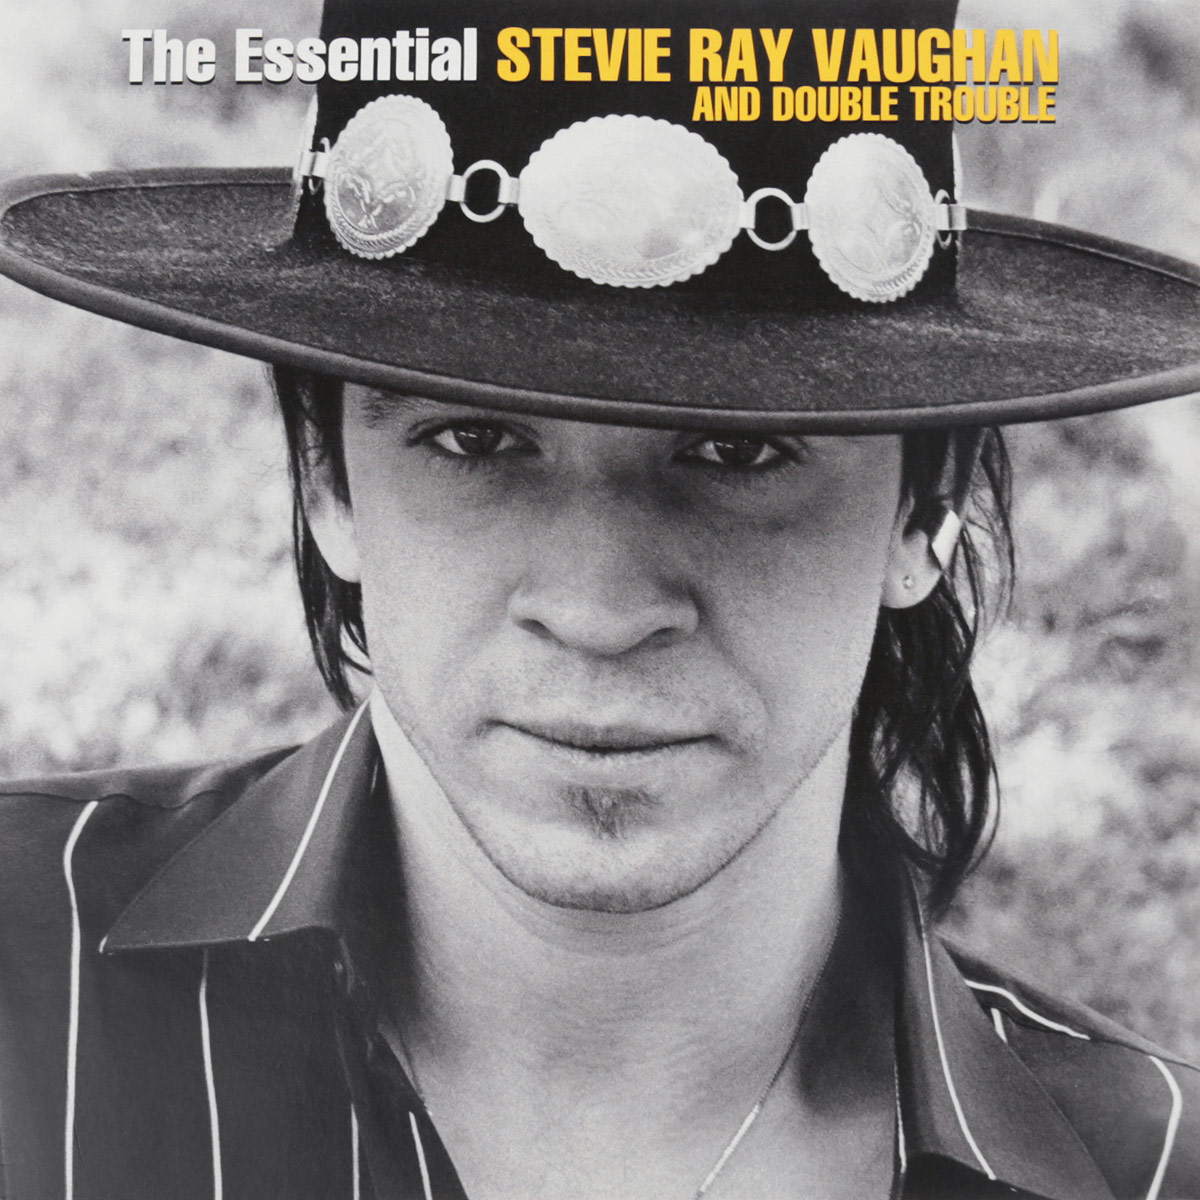 Stevie Ray Vaughan & Double Trouble Stivie Ray Vaughan And Double Trouble. The Essential (2 LP) stevie ray vaughan stevie ray vaughan texas flood